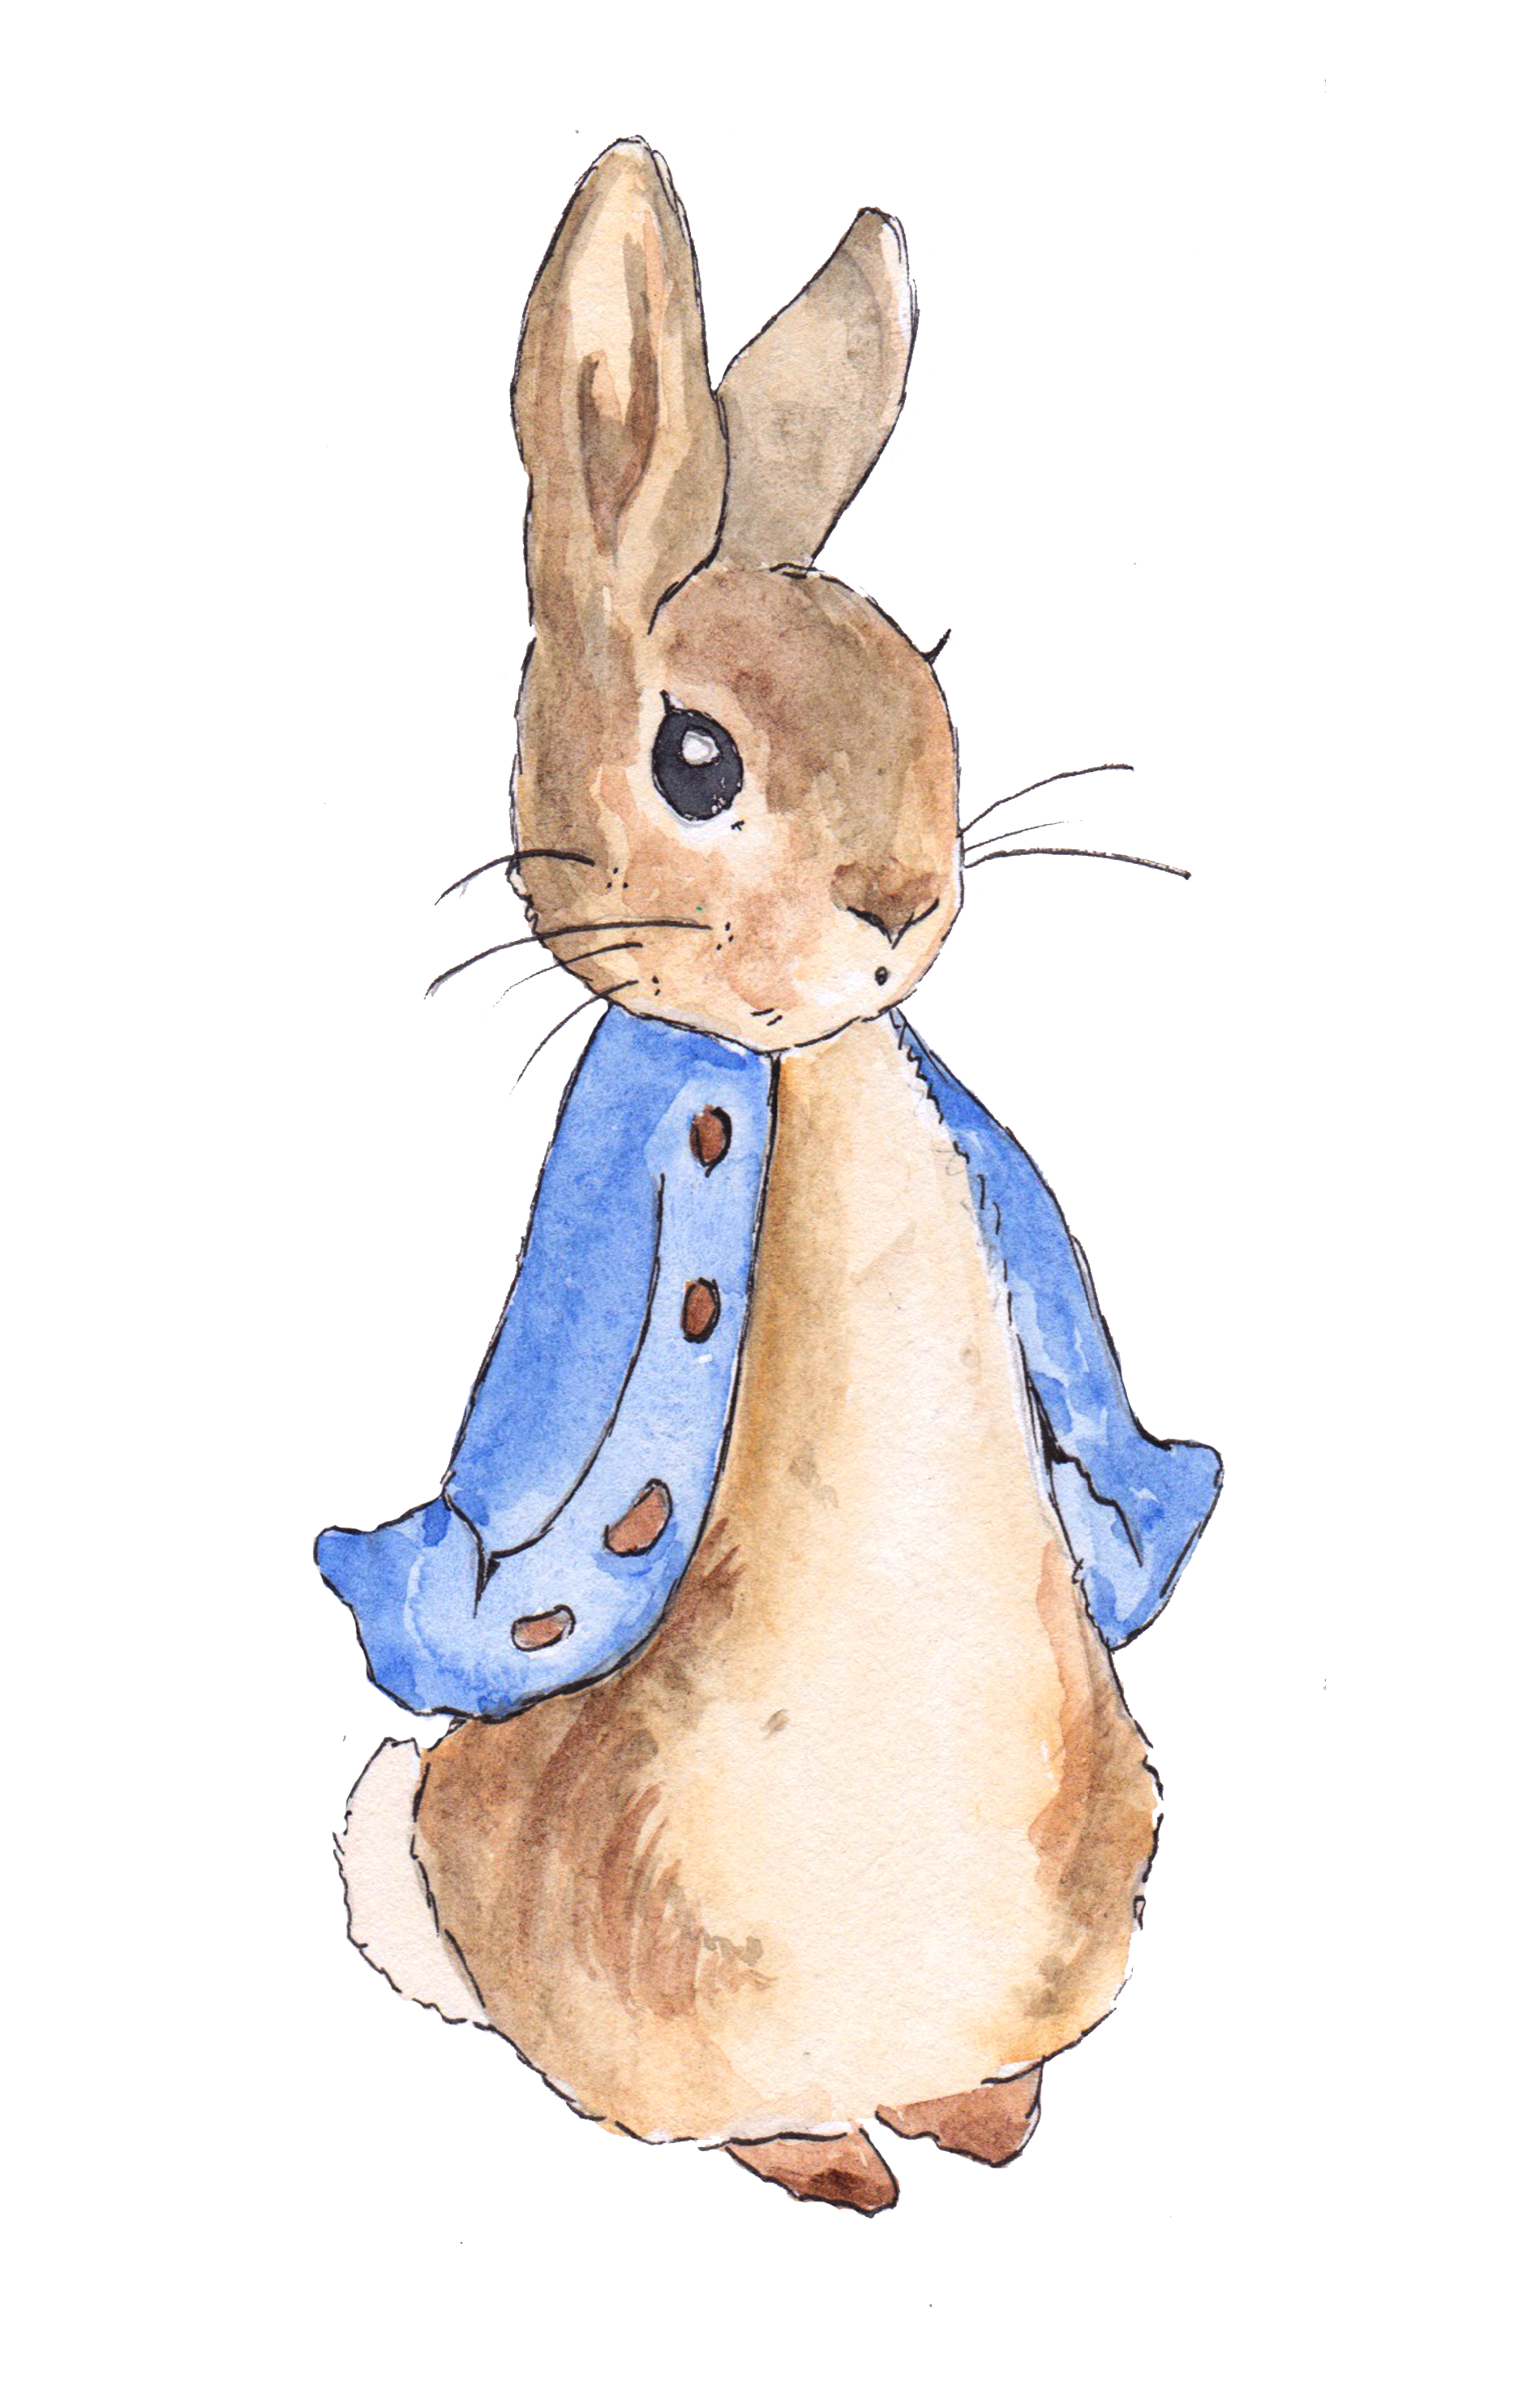 Nursery drawing bunny. The tale of peter